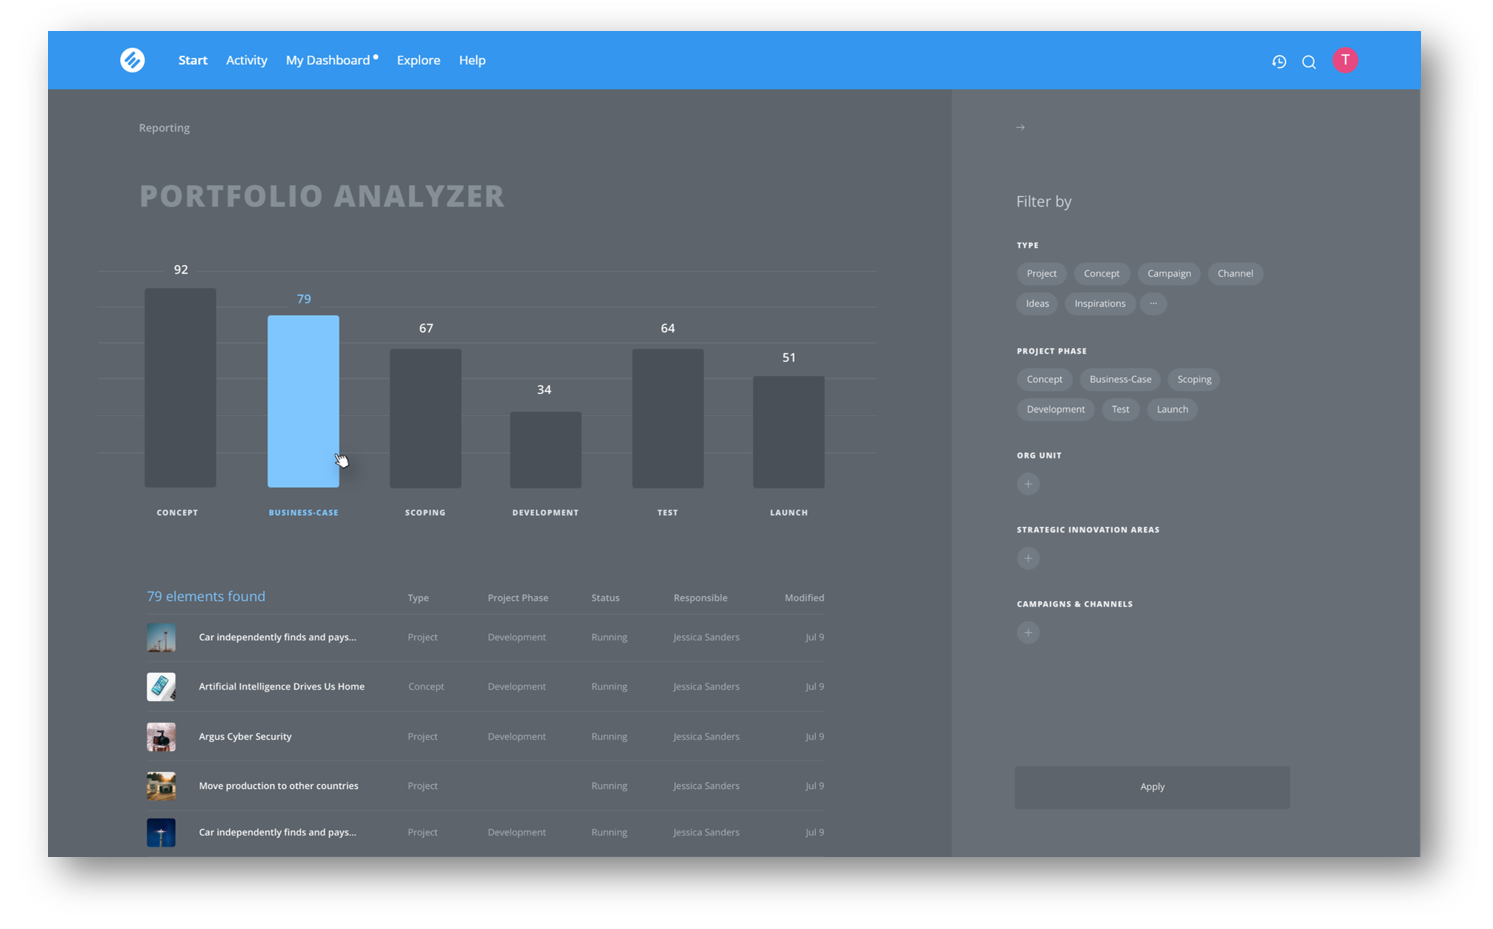 Projects Portfolio Analyzer2